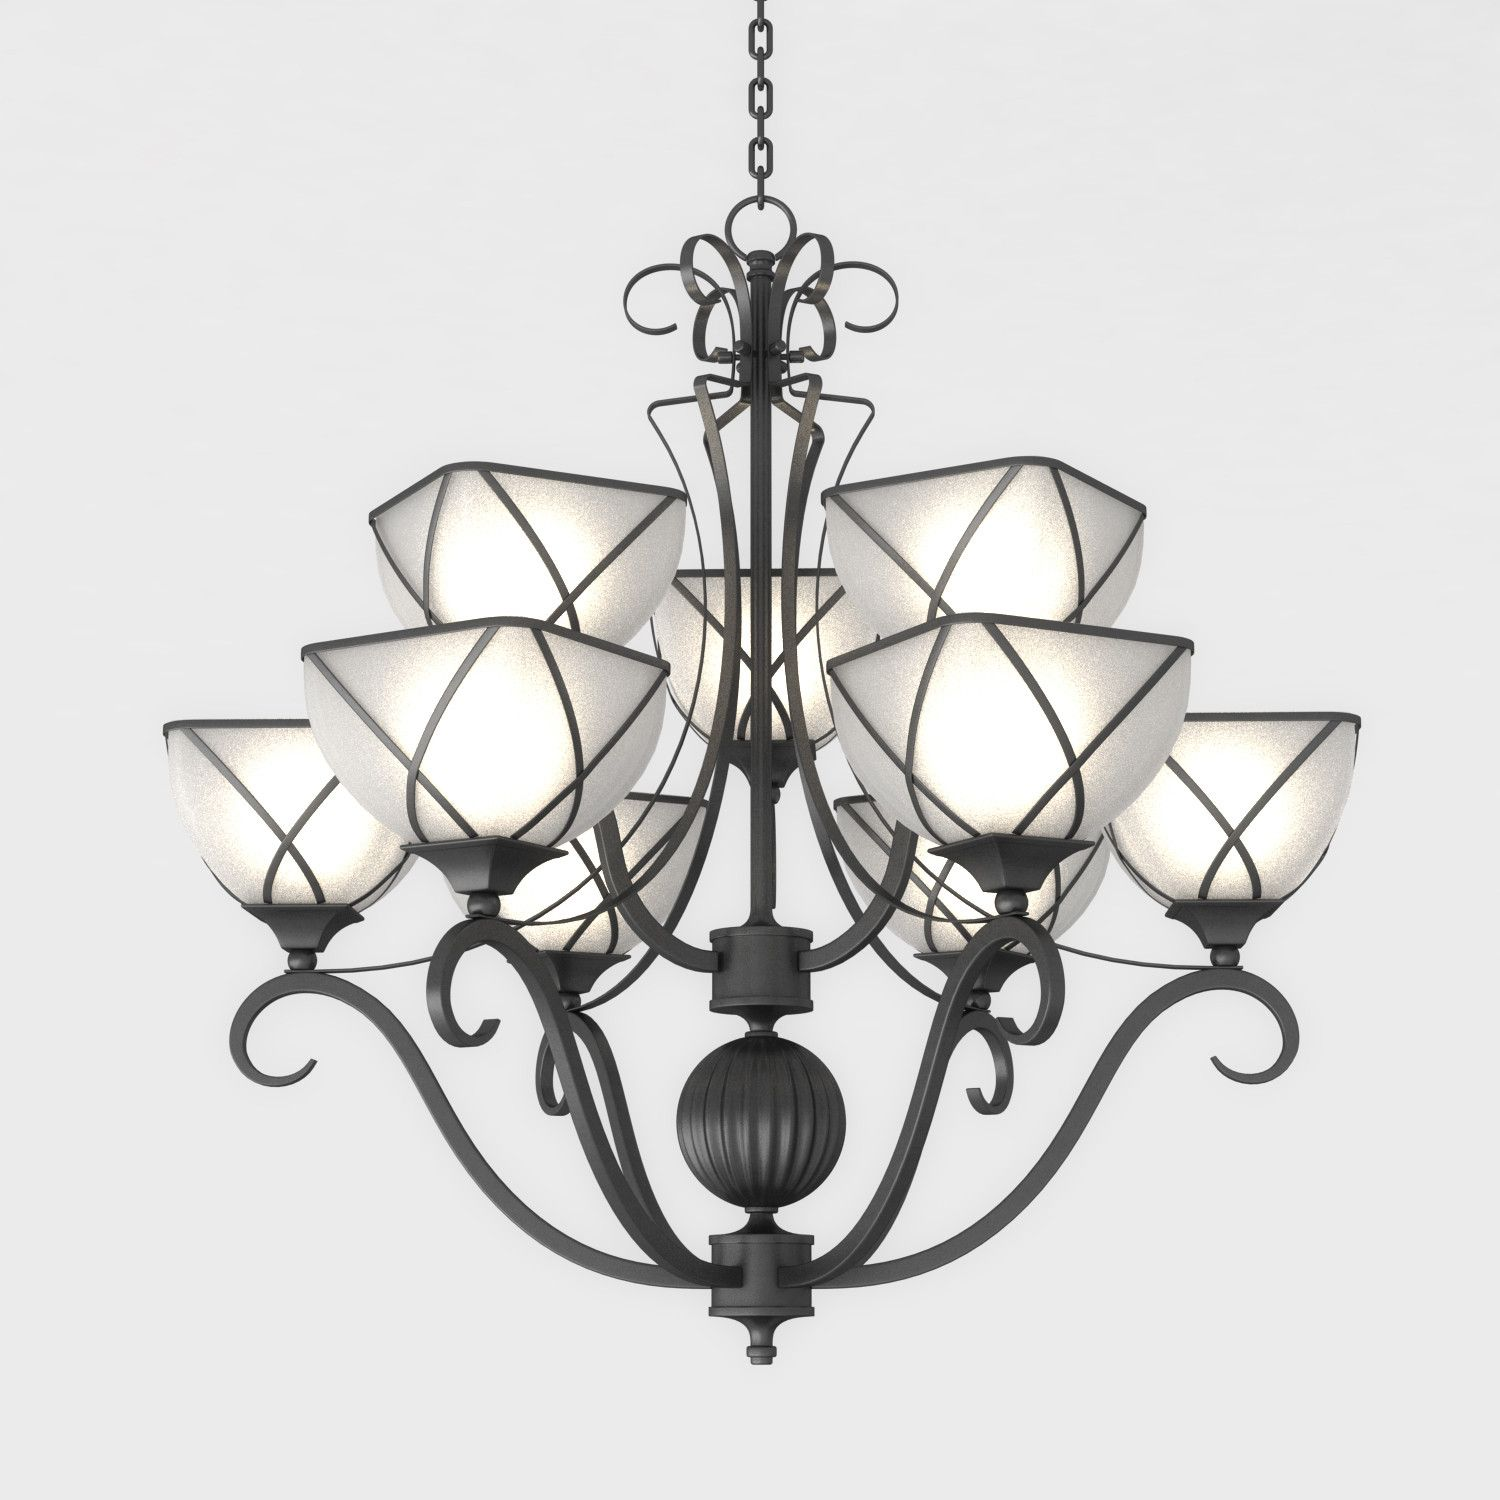 Iron Chandelier 3D Max - 3D Model | 3D-Modeling | Pinterest | Iron ...